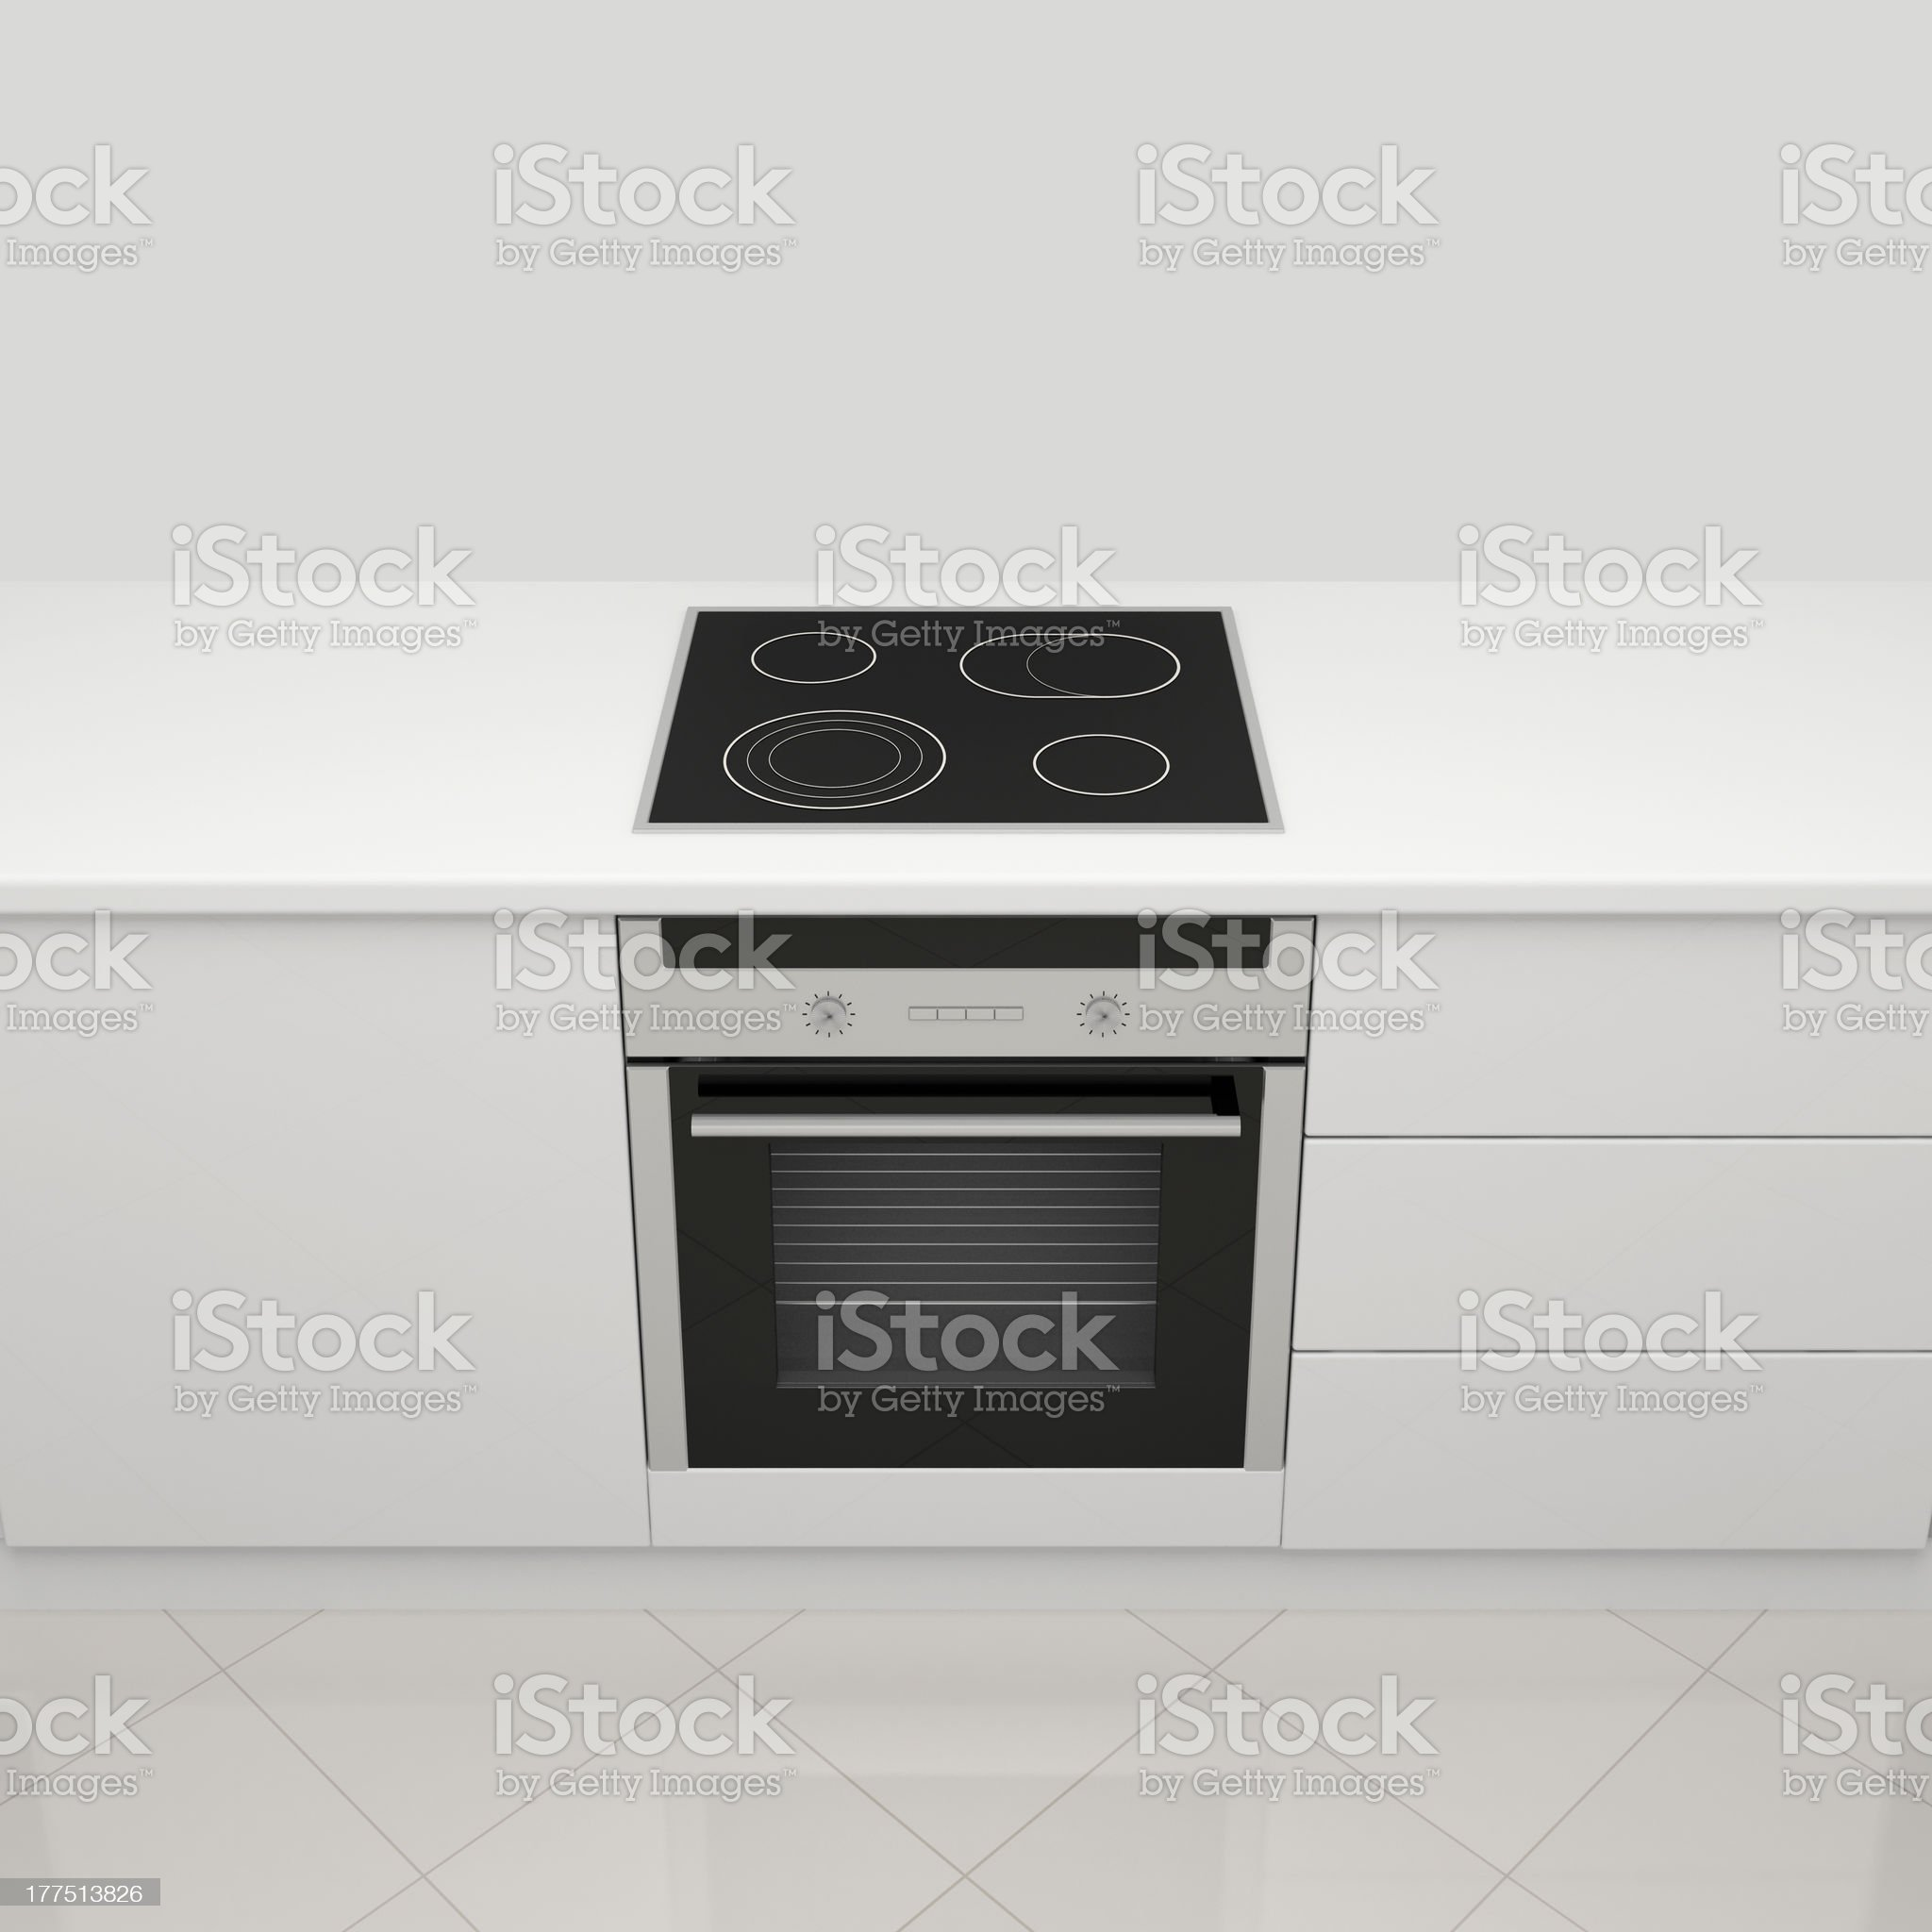 Electric stove and oven. royalty-free stock photo